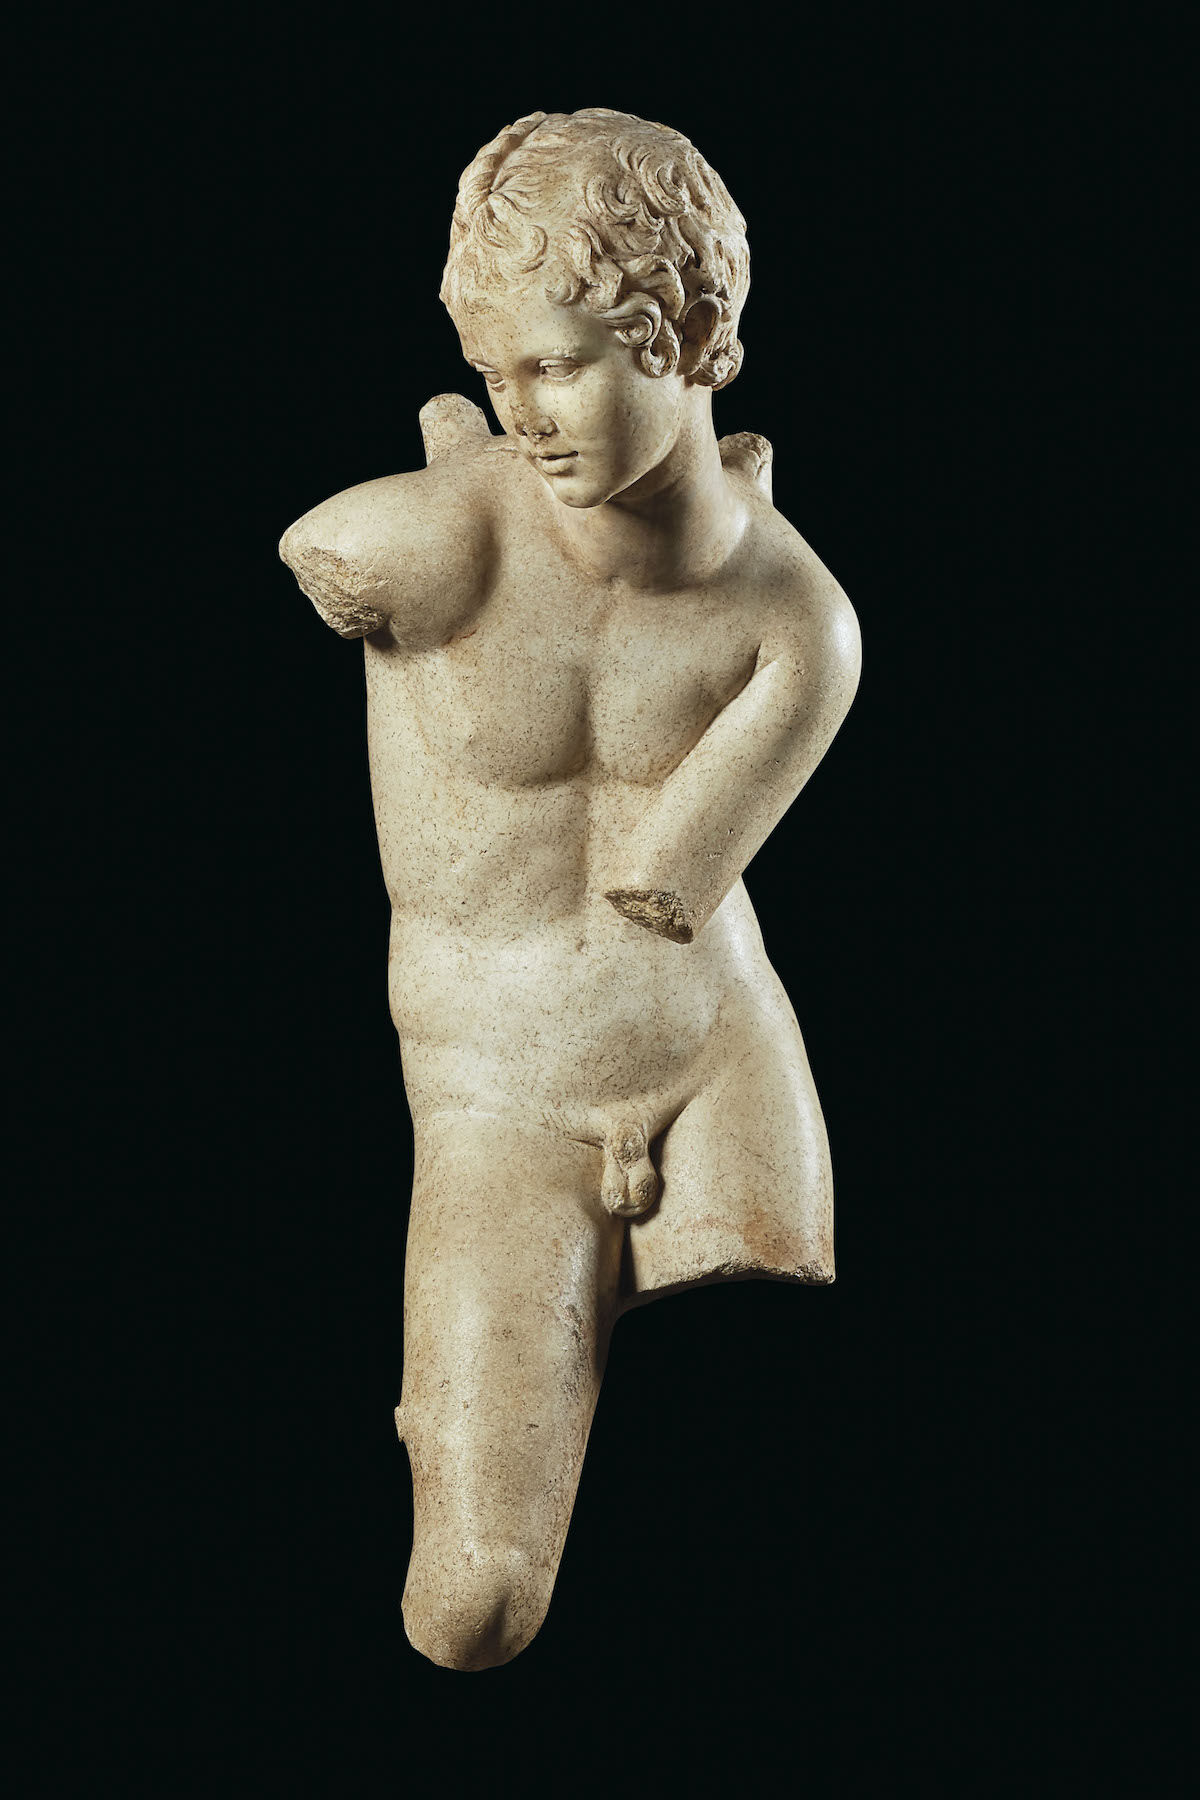 A Roman sculpture headed to auction at Christie's allegedly